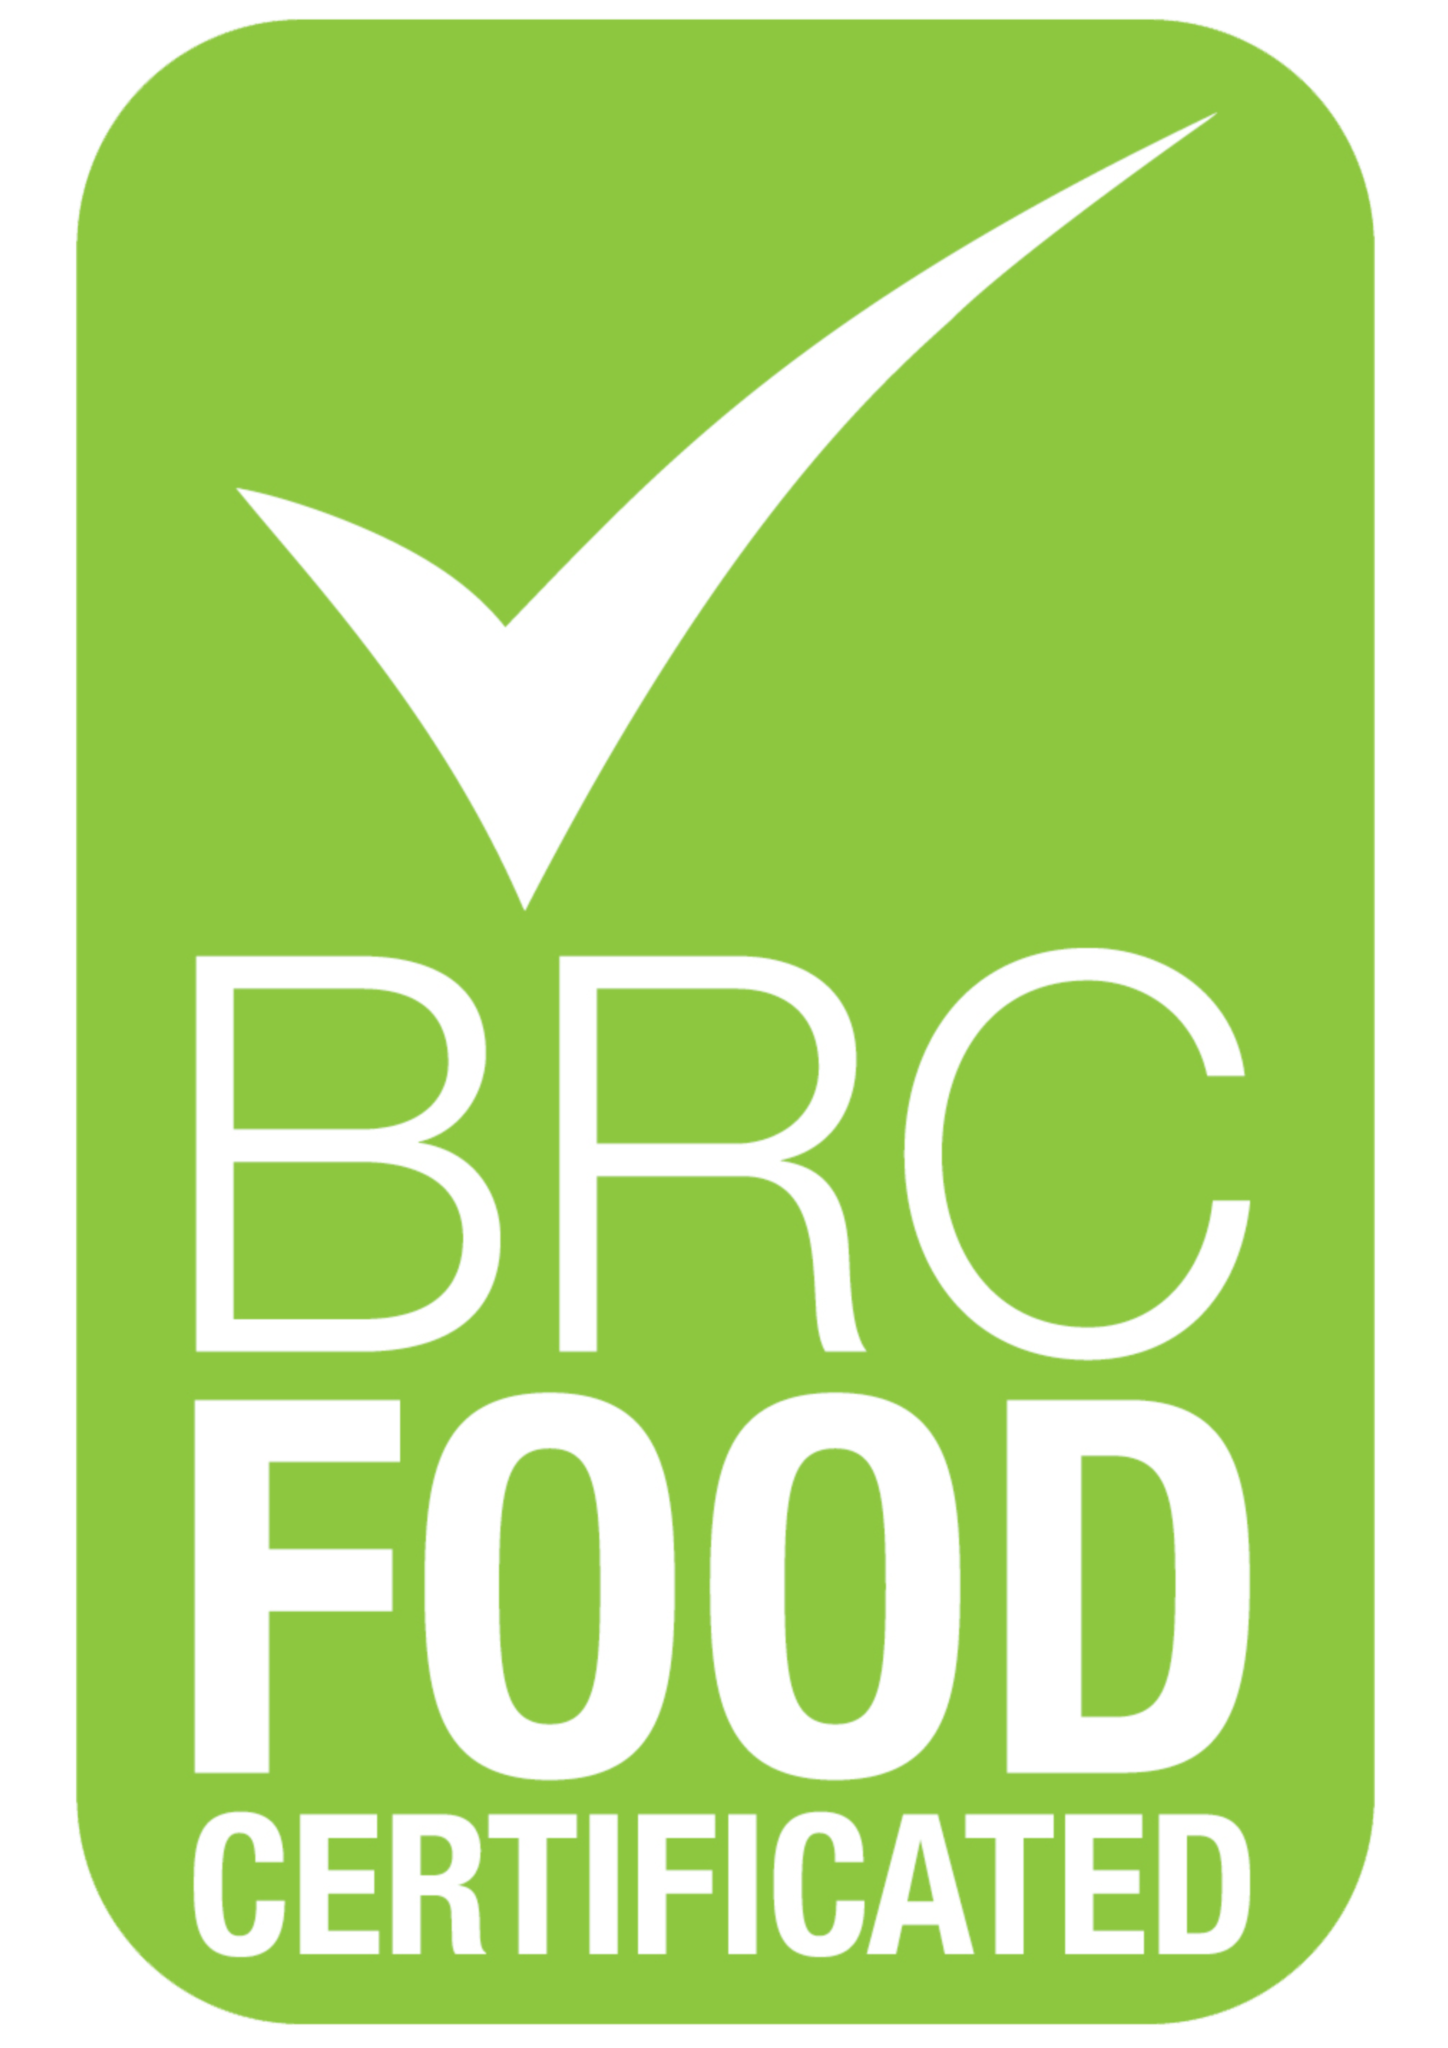 Brc Food Certified Logo Vege